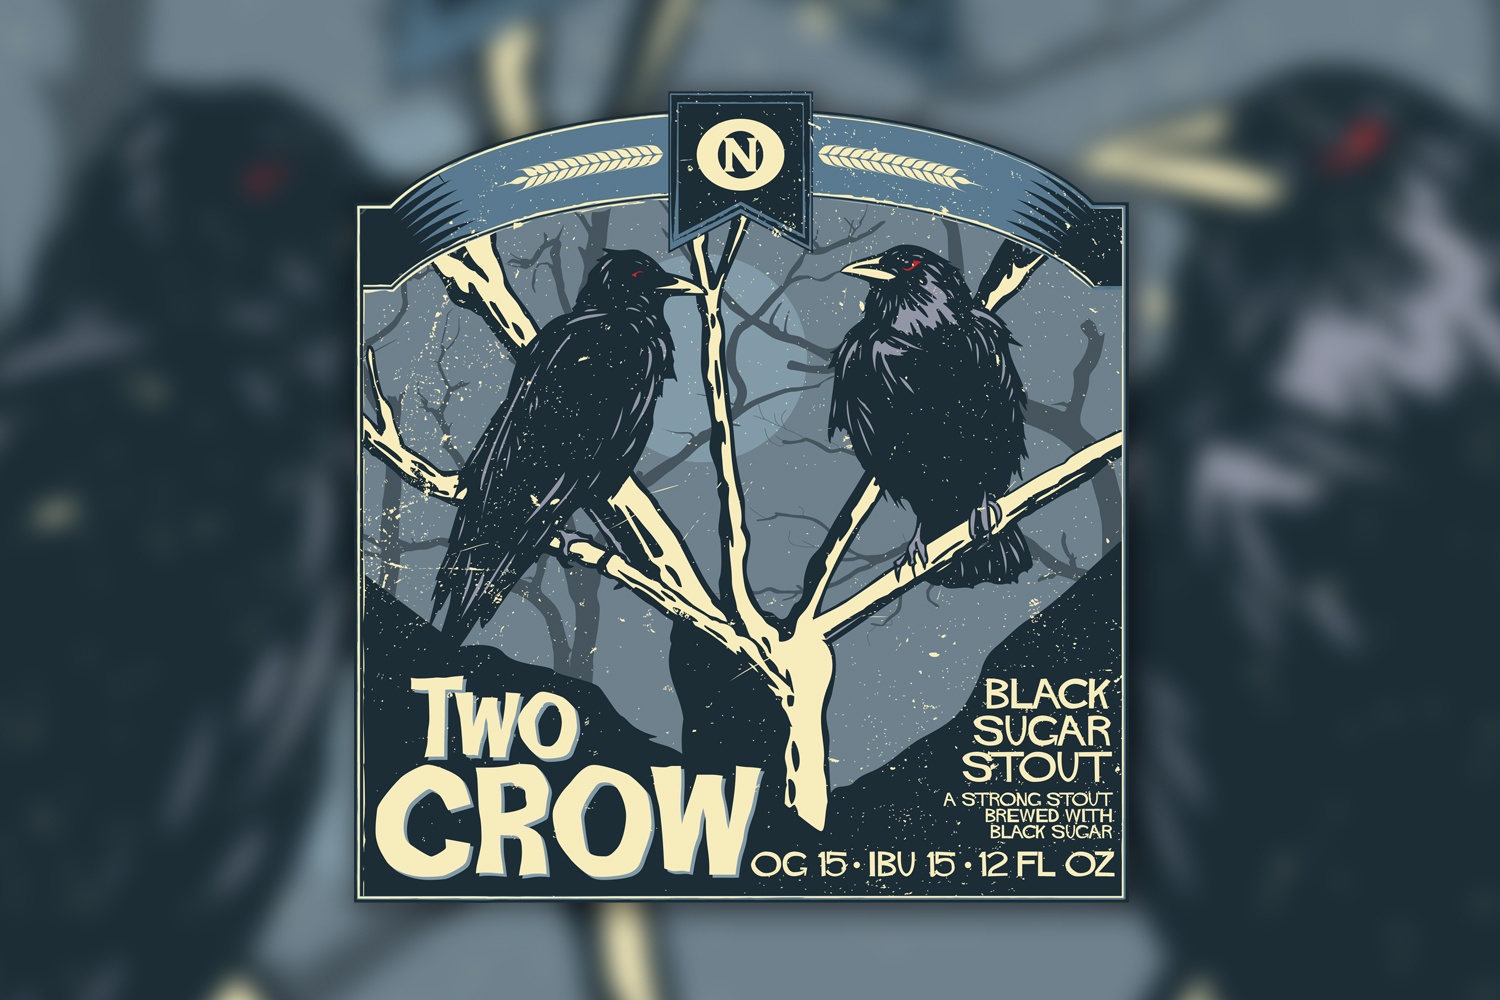 Two Crow Beer Label